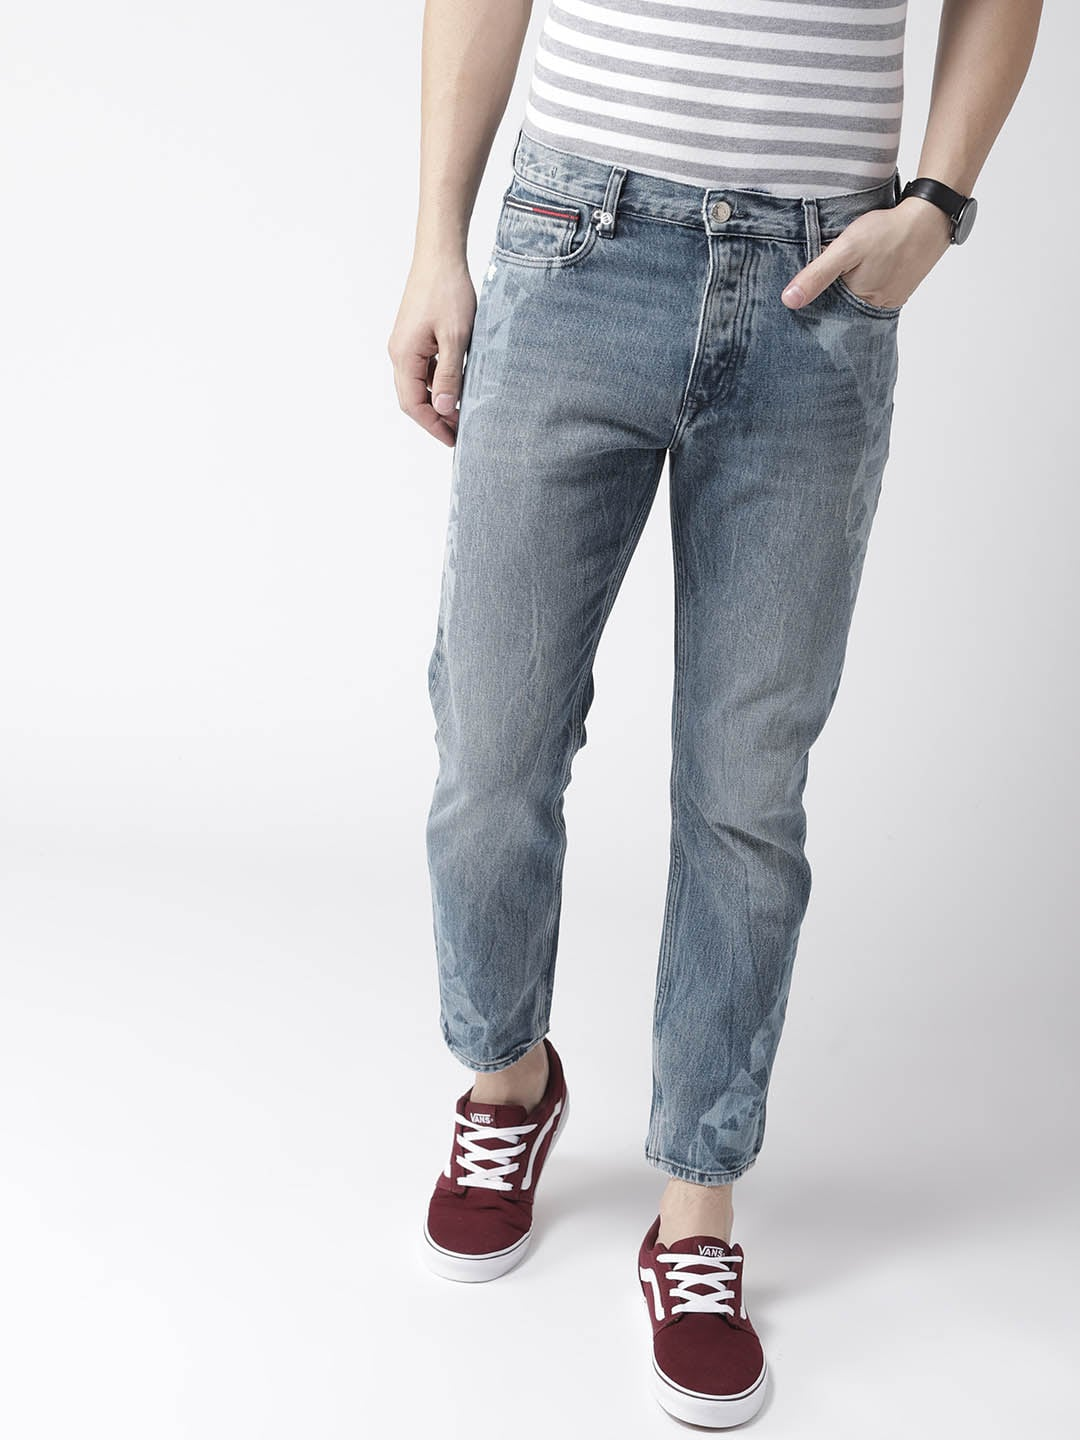 321e2dbe6826 Tommy Hilfiger Men Blue Ryan Straight Fit Mid-Rise Clean Look Stretchable  Jeans